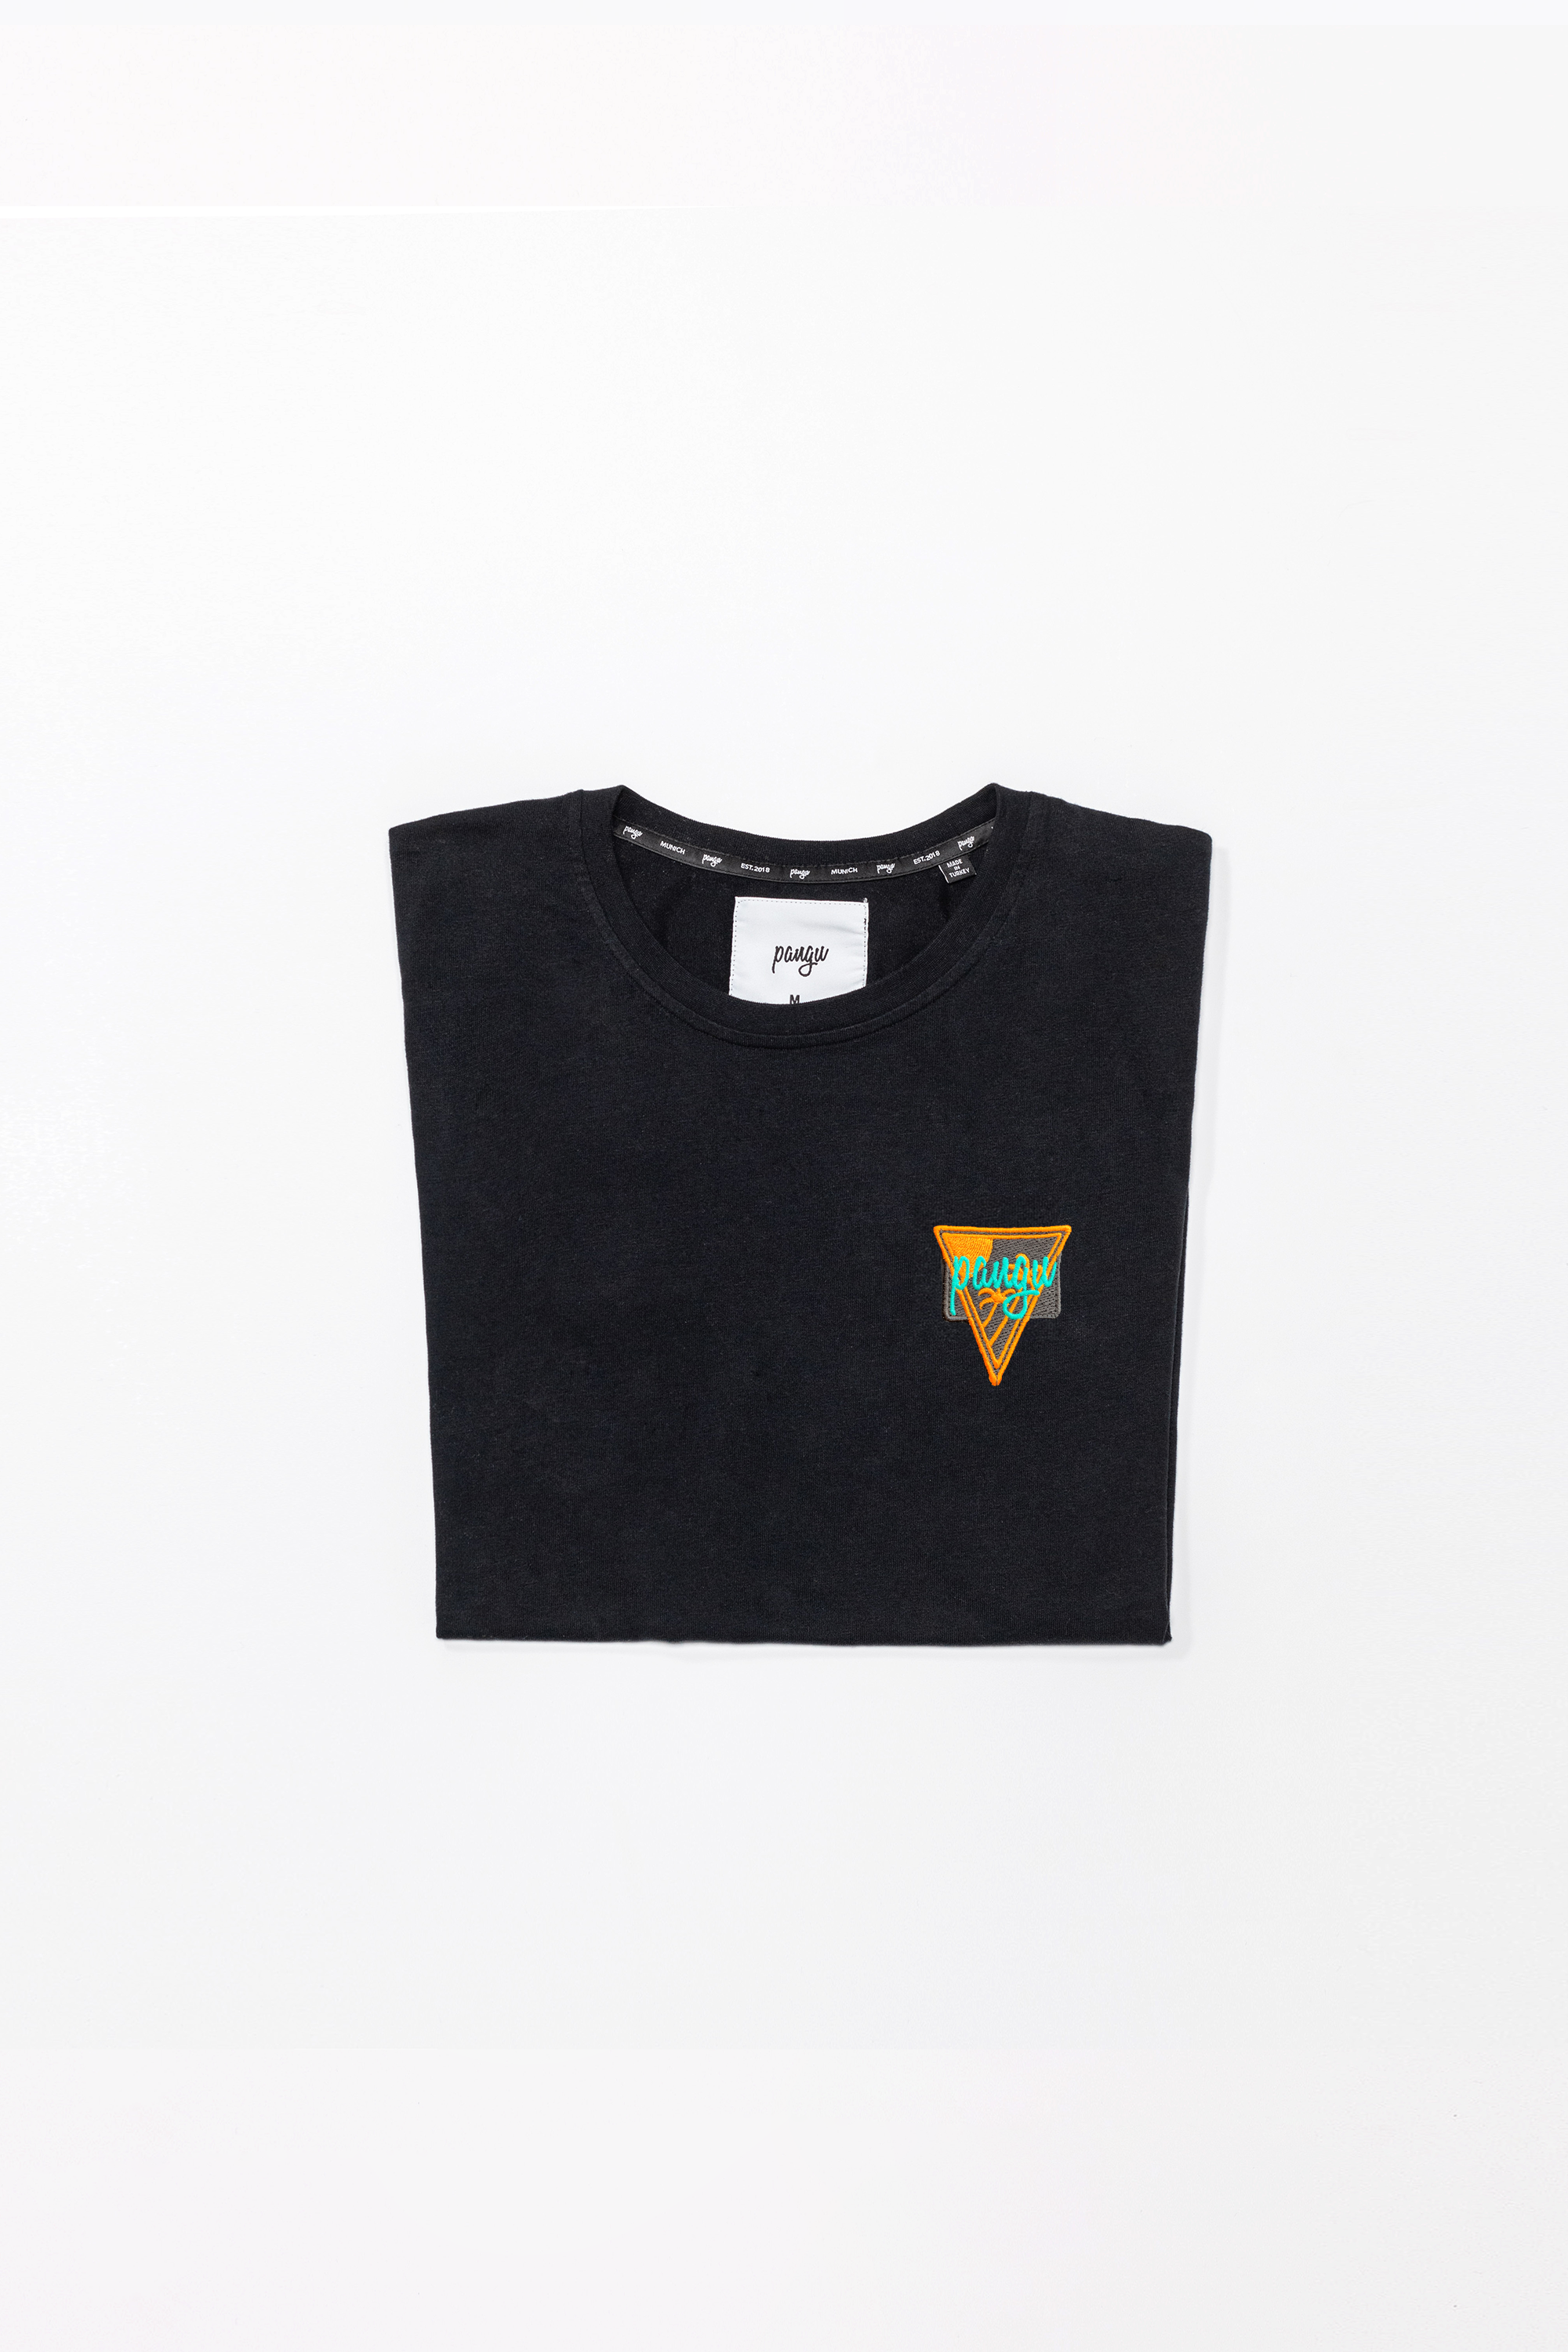 PROJECT PENGUIN SHIRT black